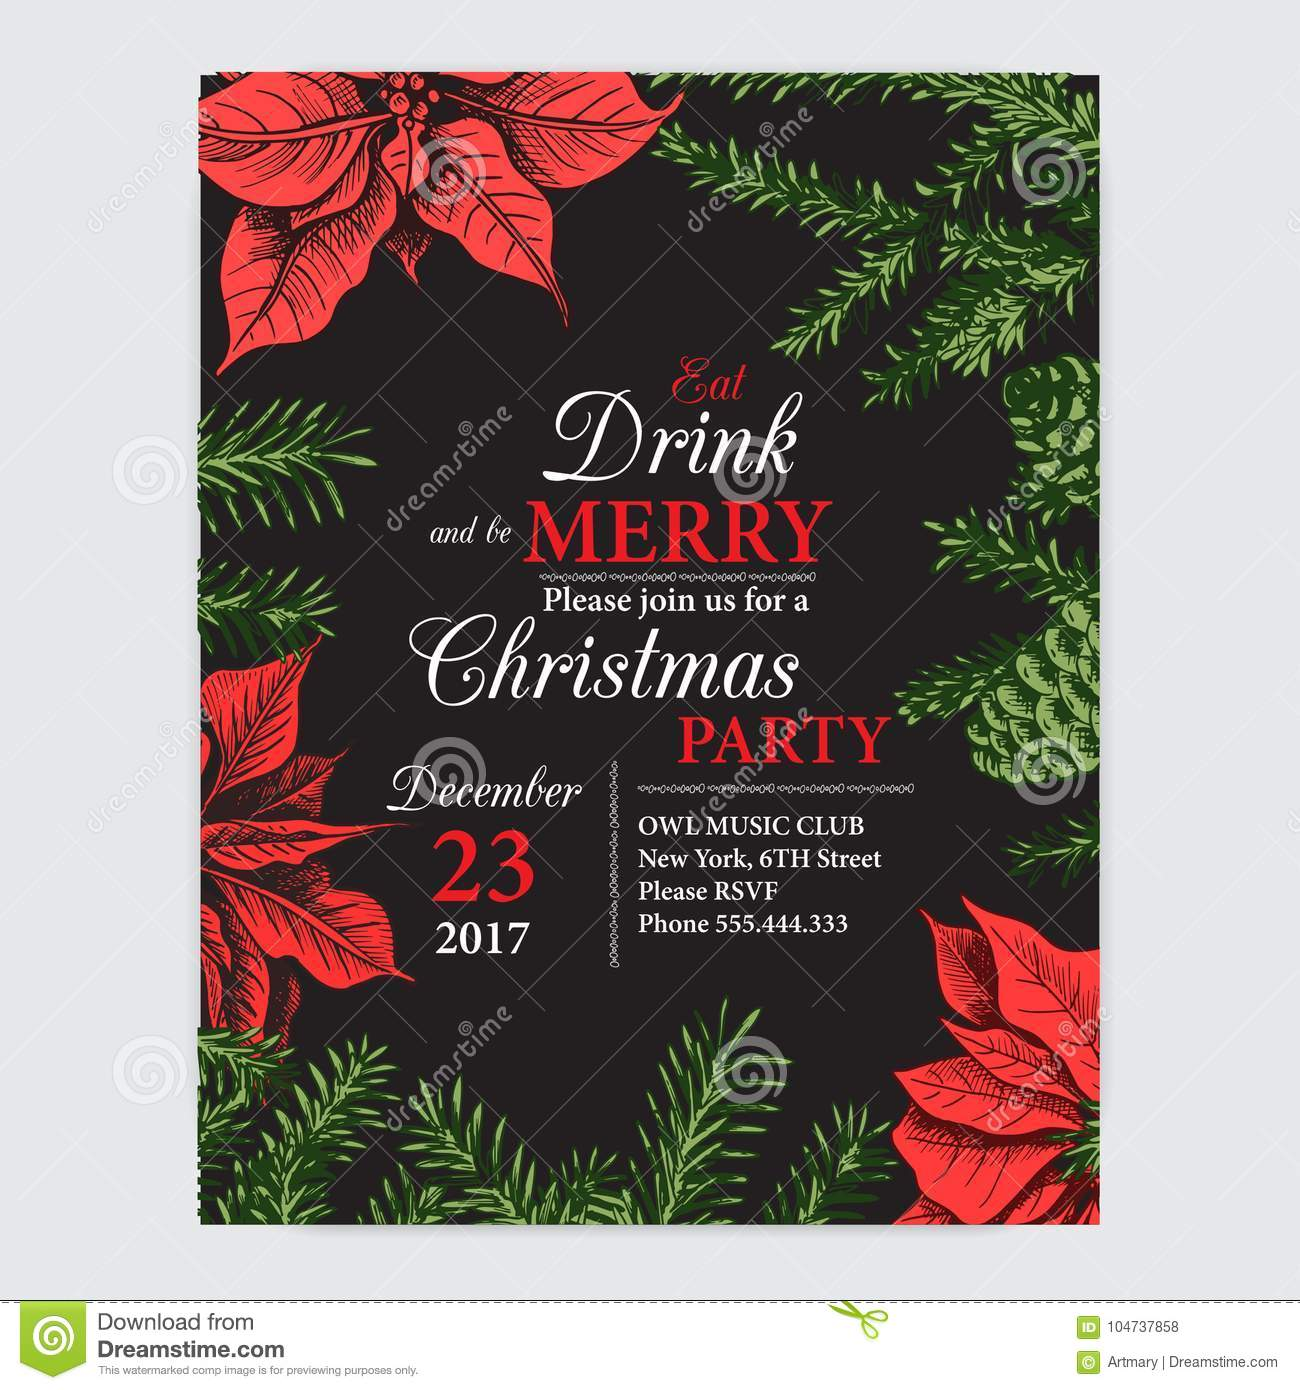 Invitation card for a christmas party design template with xmas download invitation card for a christmas party design template with xmas hand drawn graphic stopboris Image collections